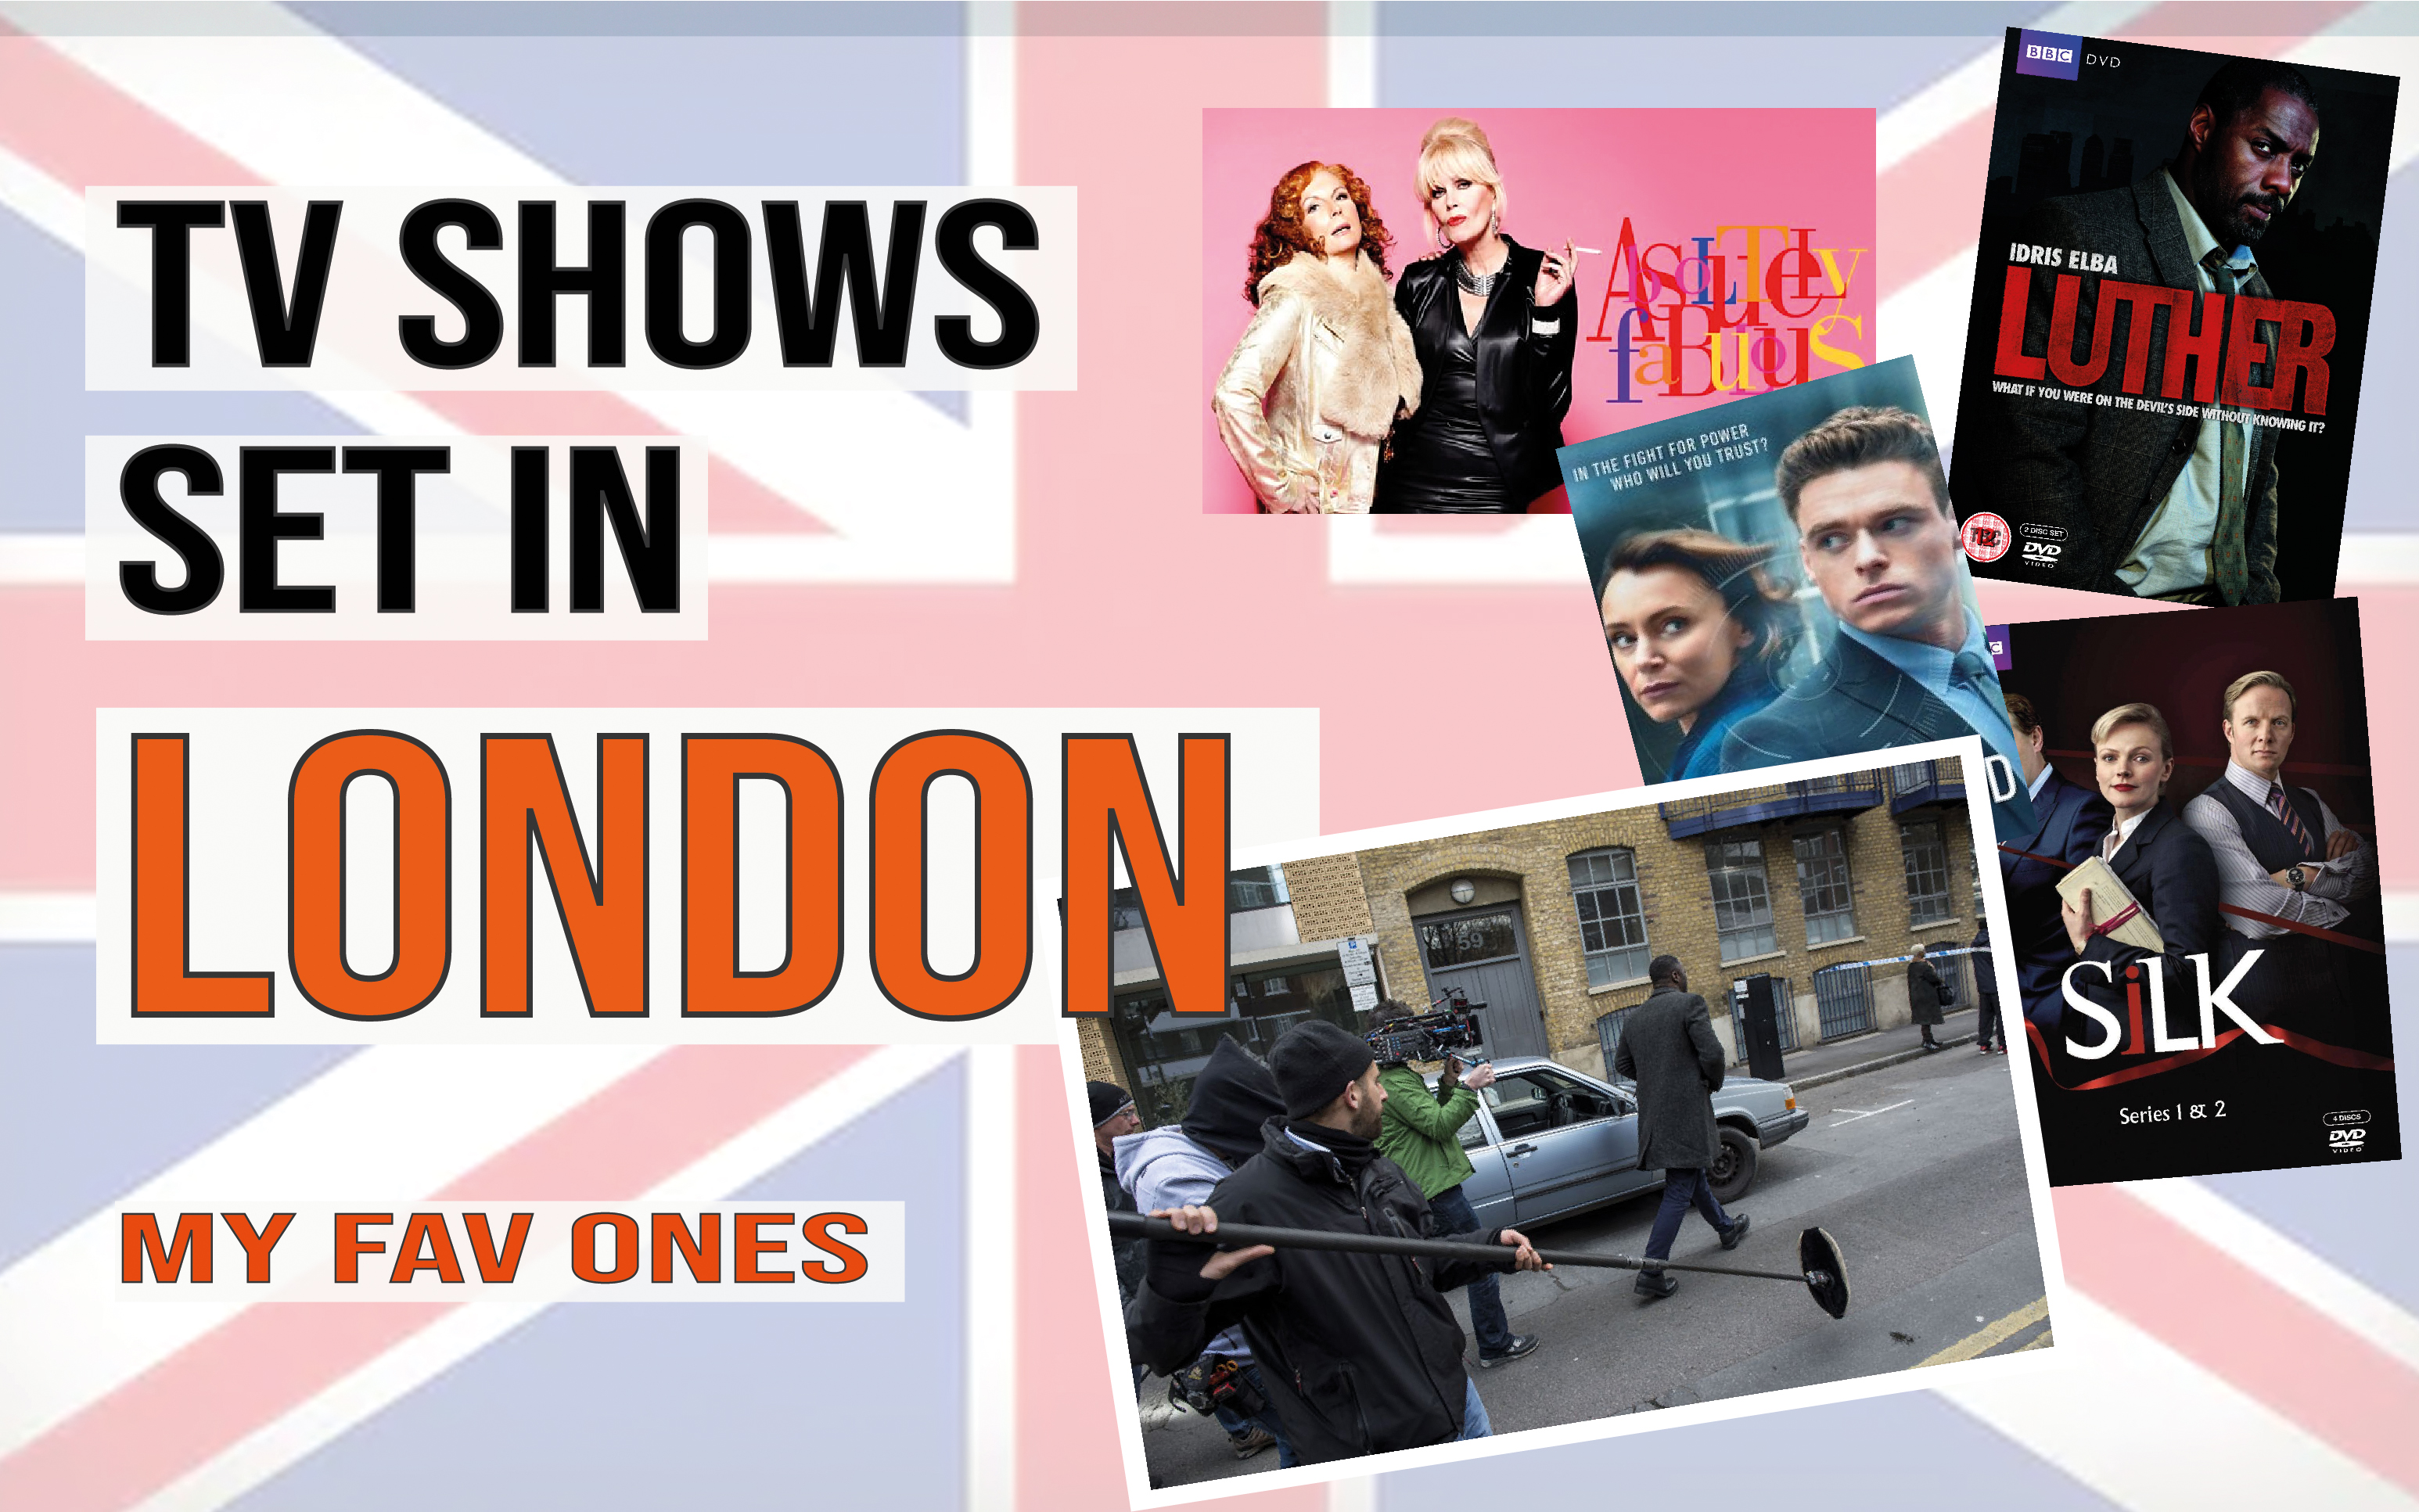 TV Show set in London | My favorite ones